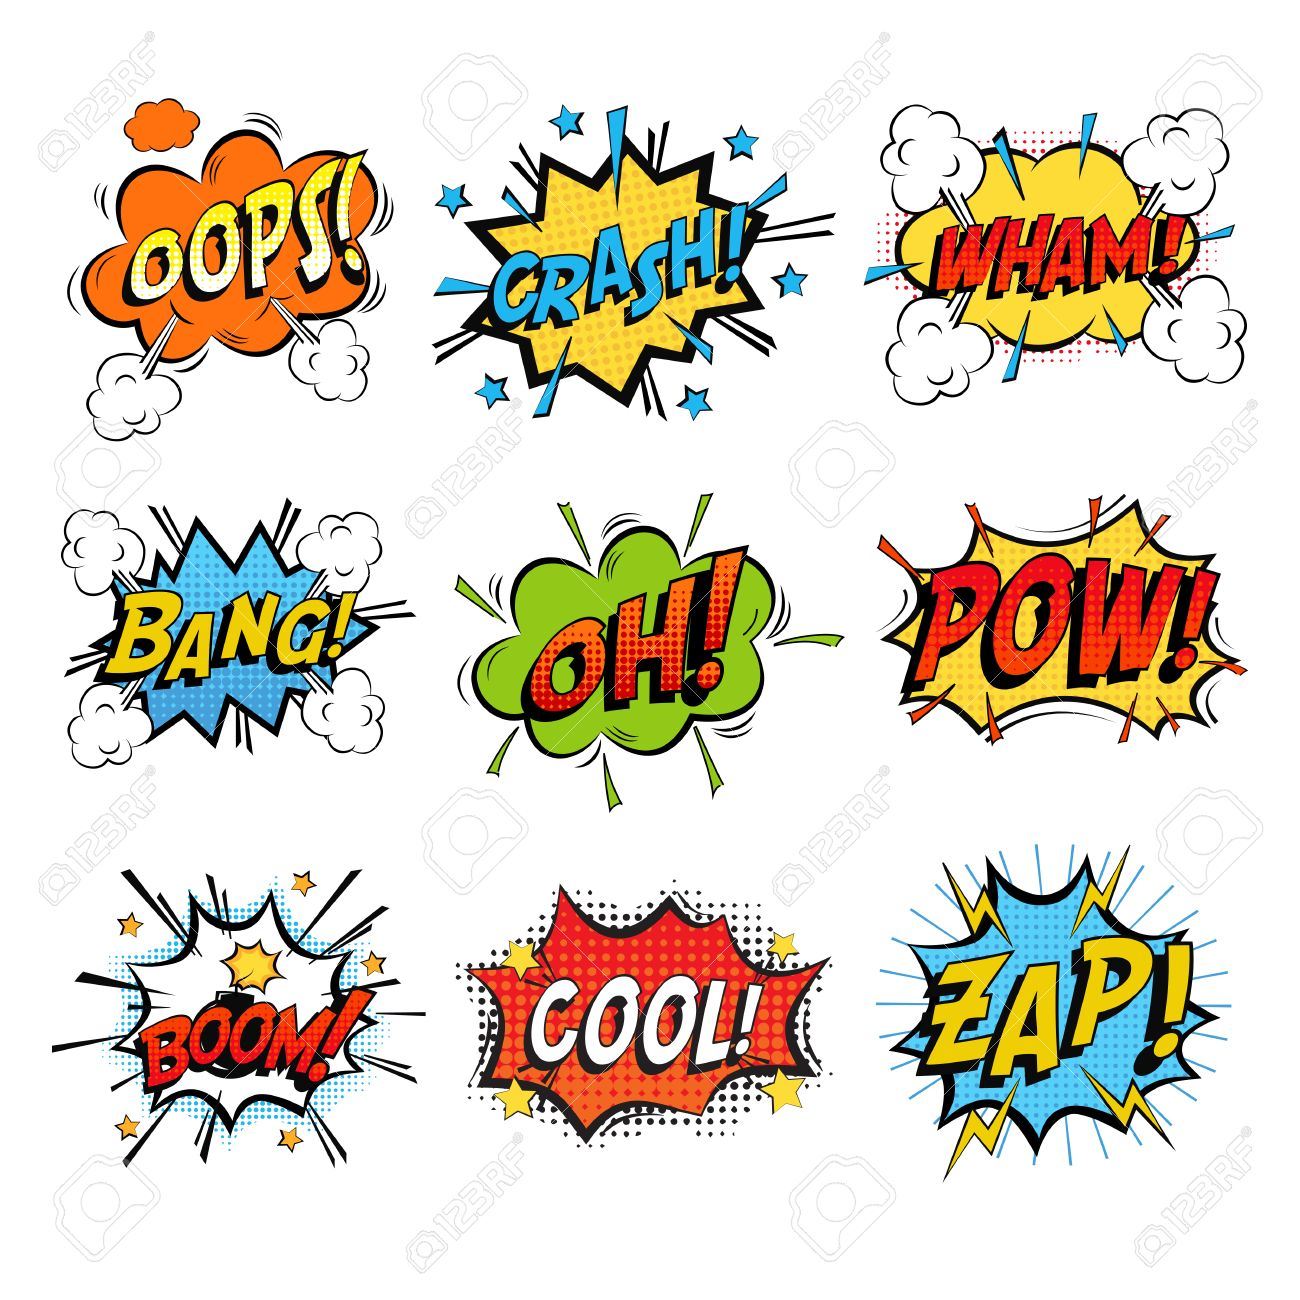 Set Of Bubble Or Bubbles Speech. Crash And Smash Bubble And Wham.. Royalty  Free Cliparts, Vectors, And Stock Illustration. Image 67151081.